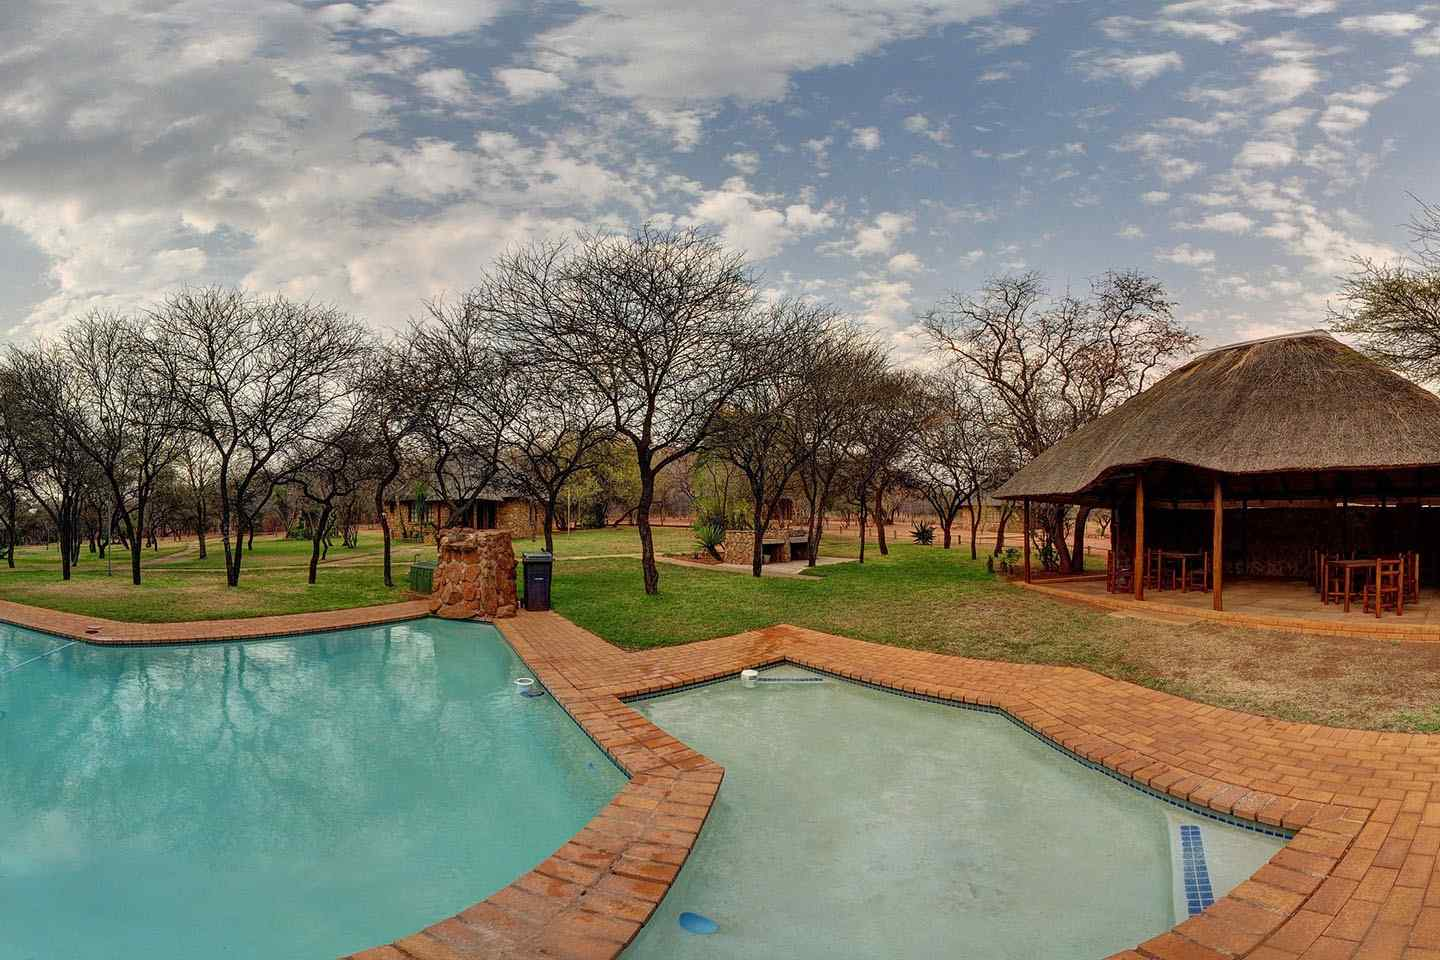 Beestekraal South Africa  City new picture : Kwamahla Lodge, Rustenburg, South Africa